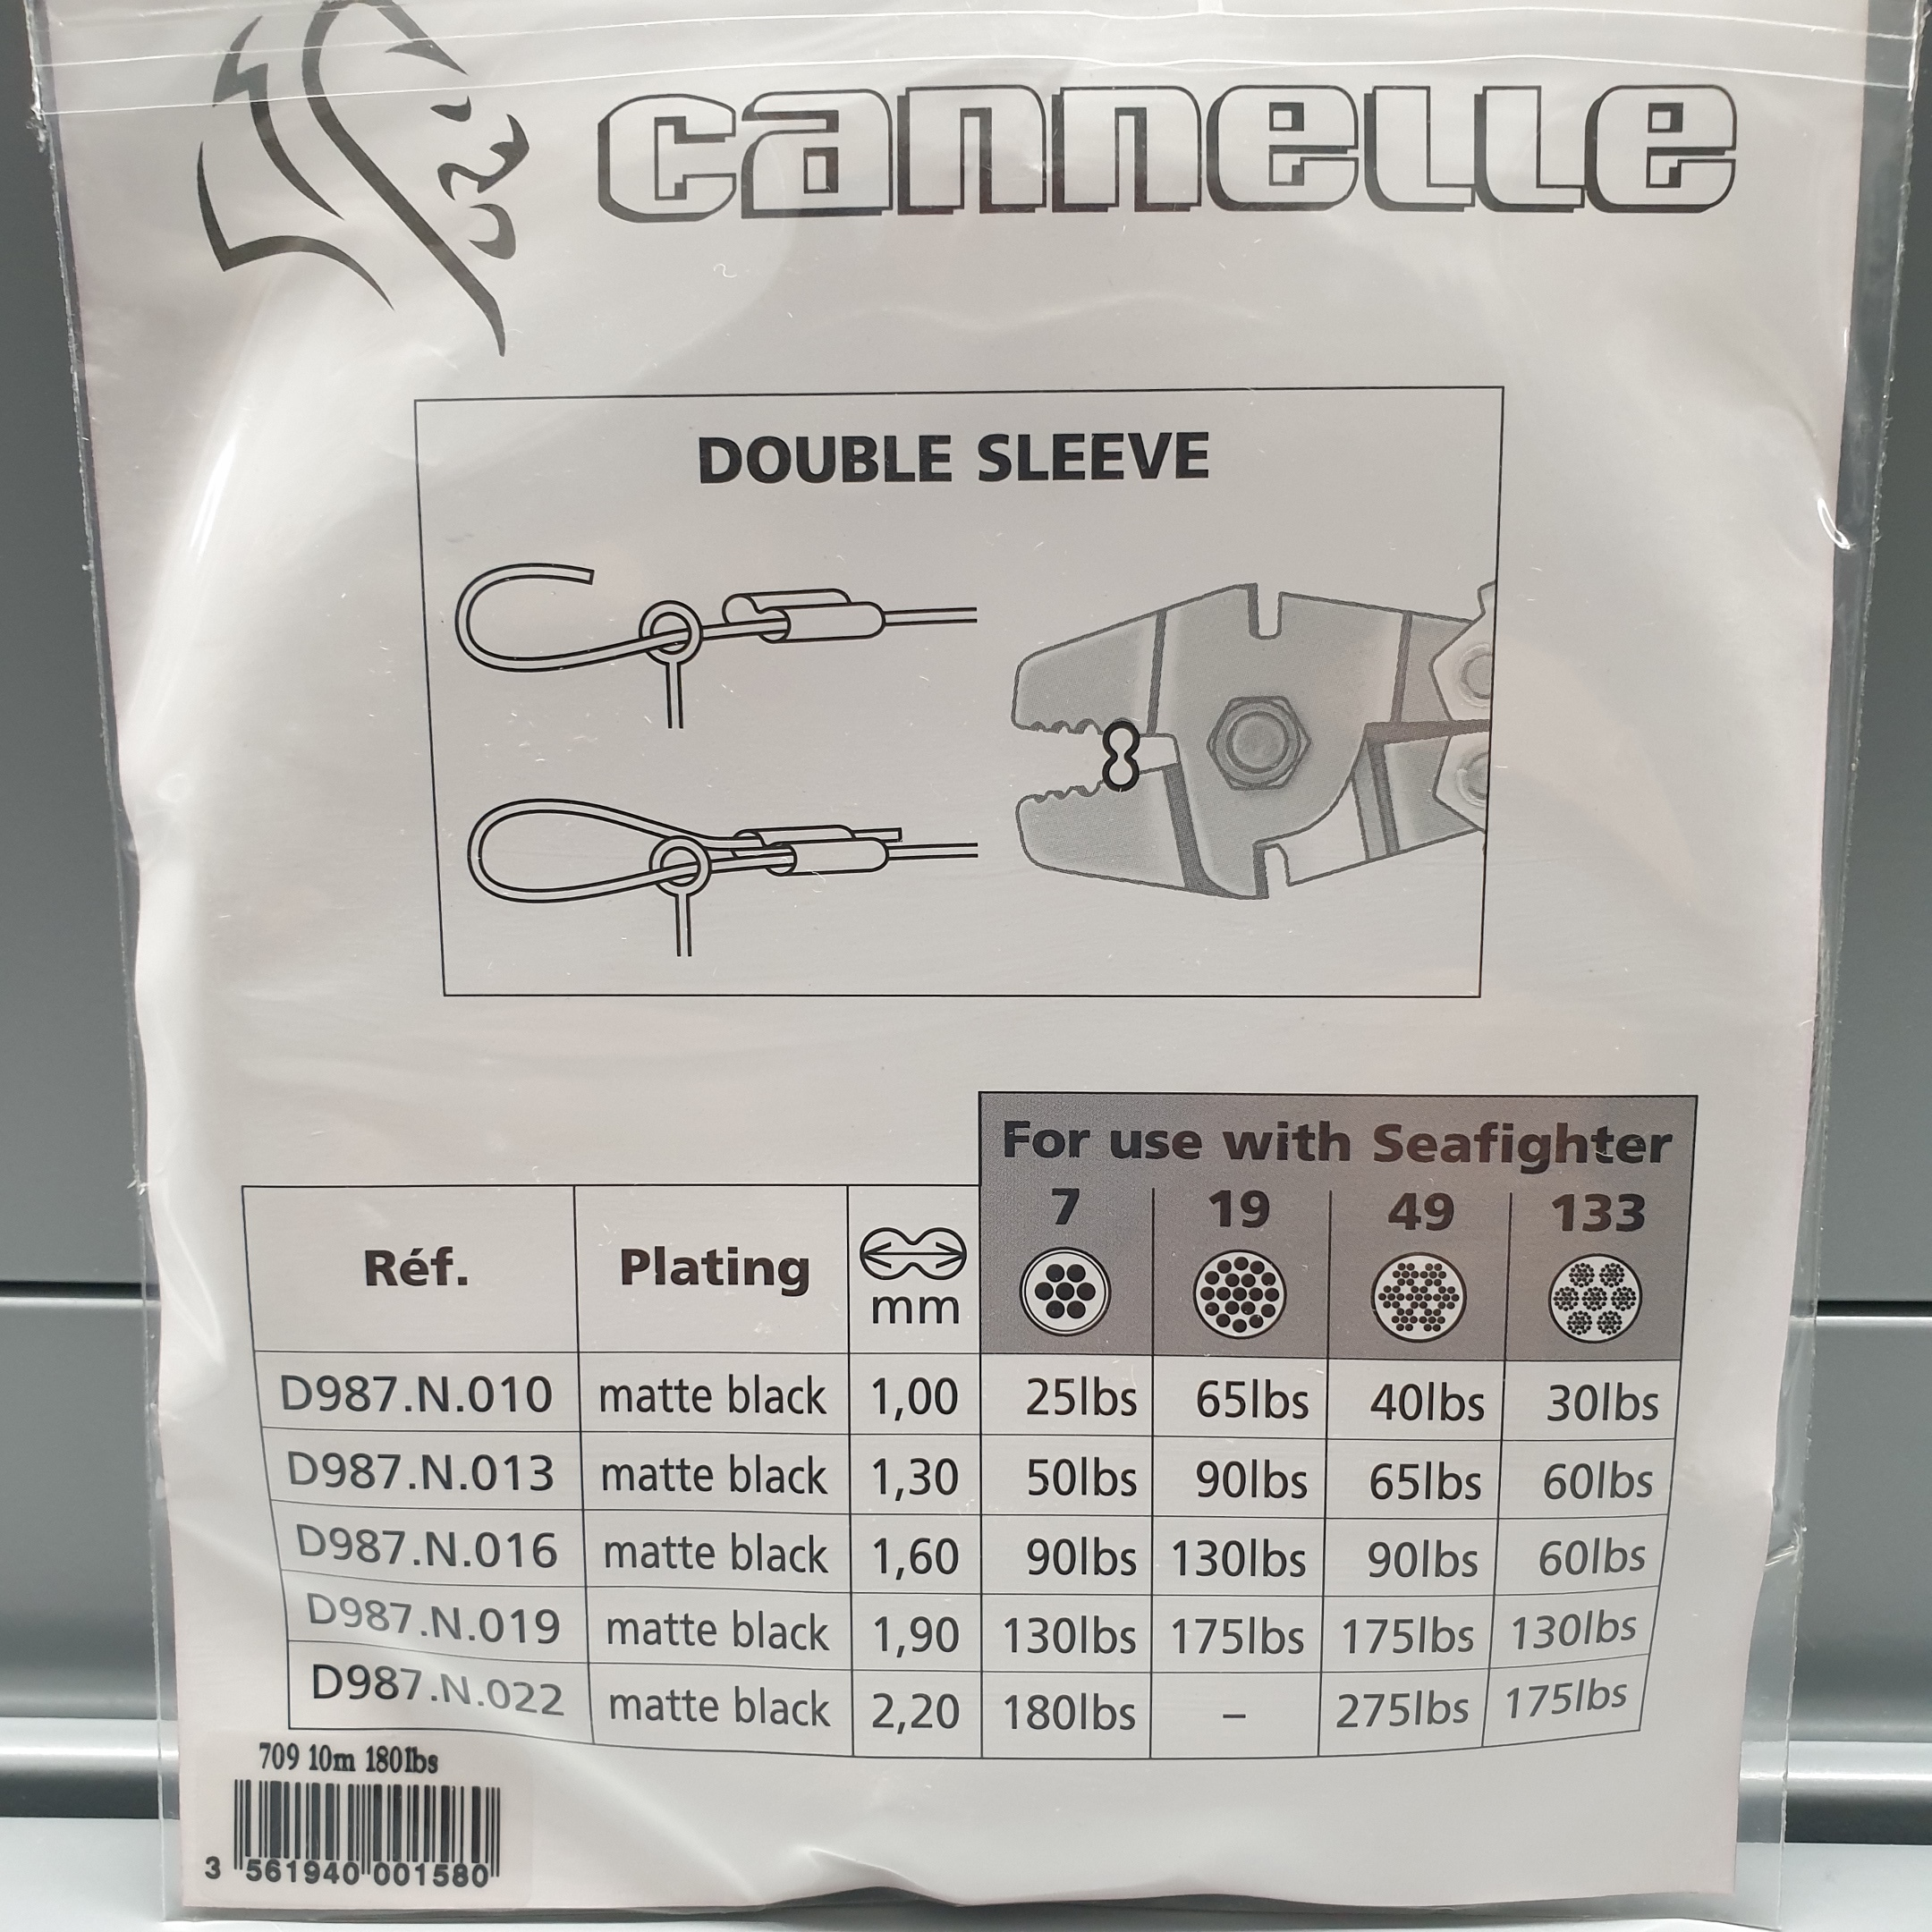 cannelle Seafighter Stainless Stahlvorfach 10m 50lbs 90lbs 130lbs 180bs 7X7 OVP